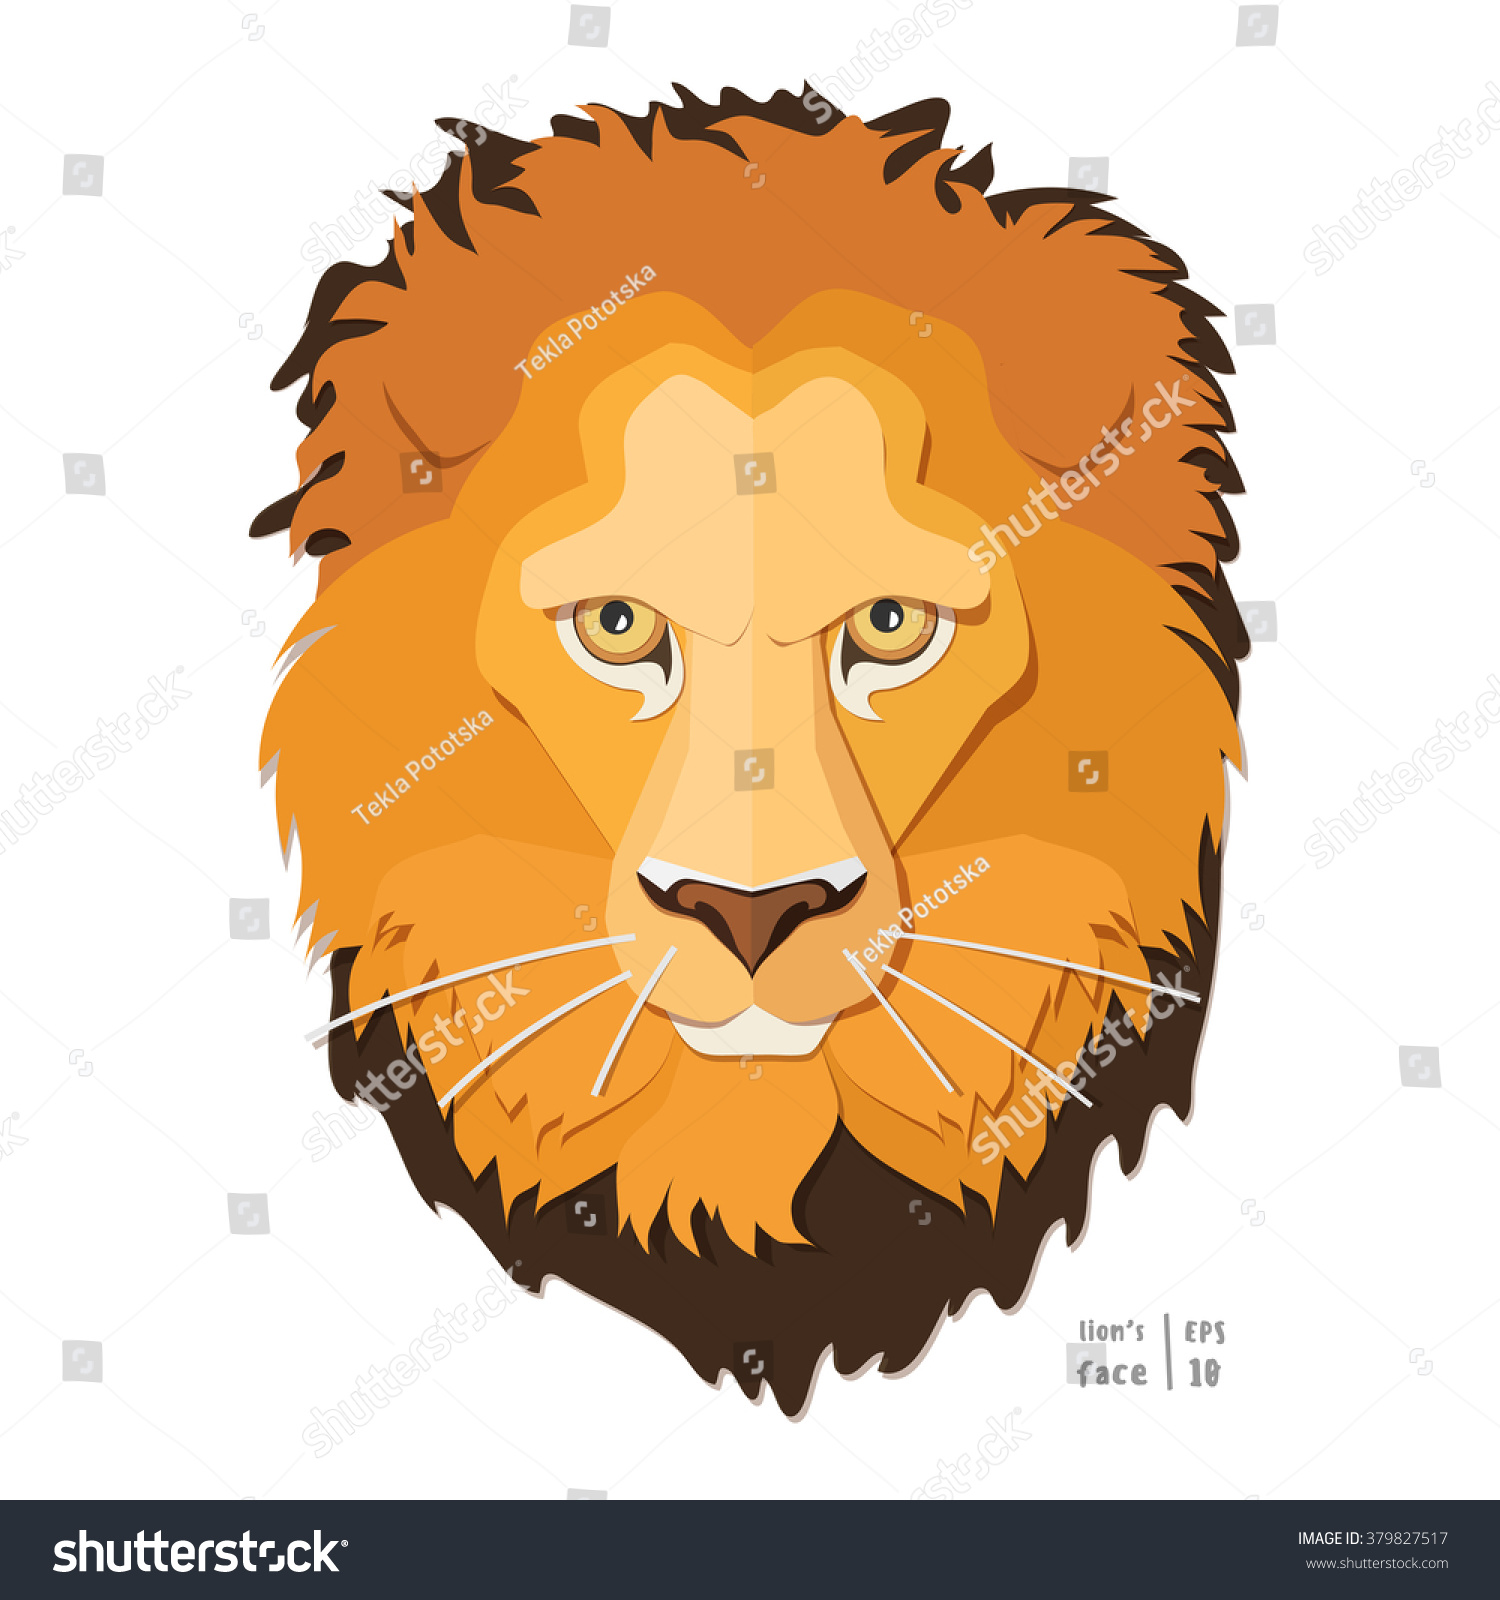 paper lion analysis Gender issues in the lion and the jewel by wole soyinka: a linguistics-oriented analysis from a systemic functional grammar and critical discourse analysis.